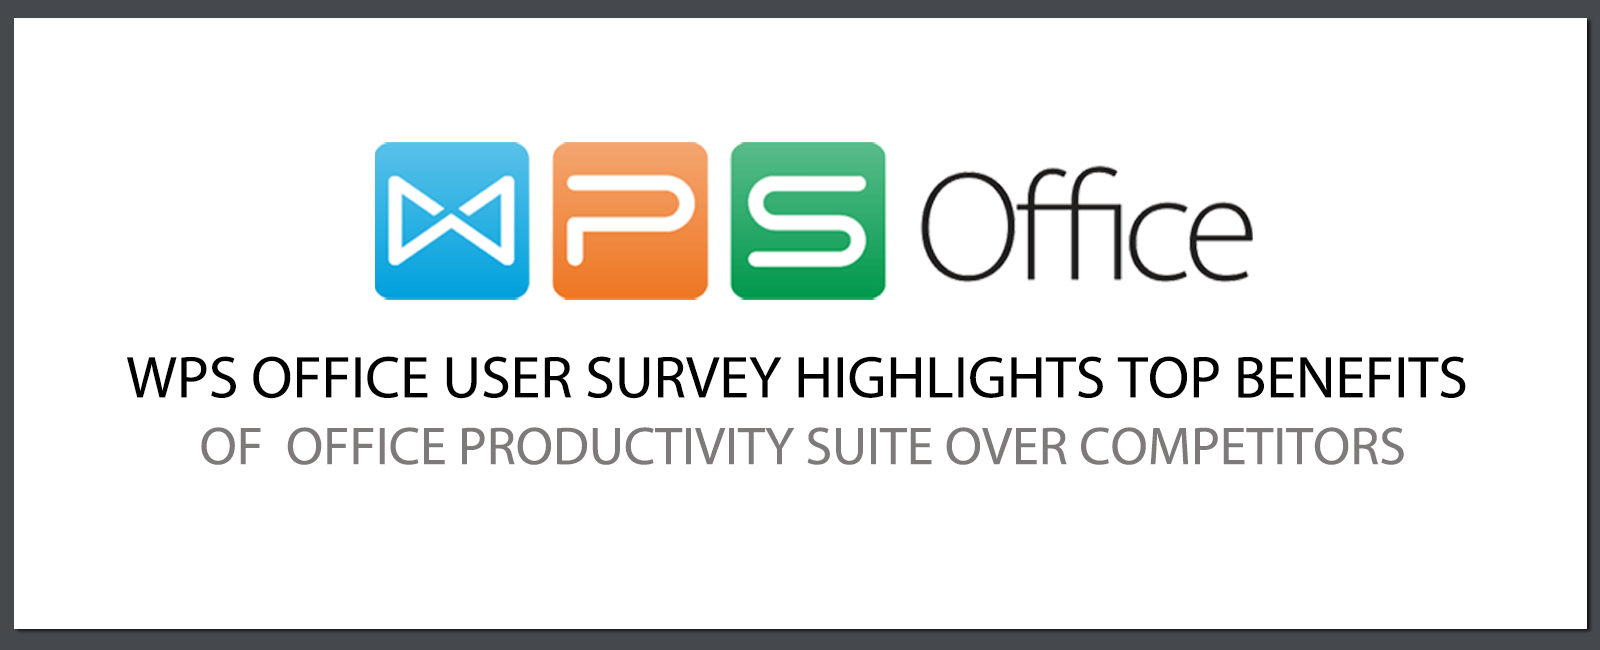 WPS Office User Survey Highlights Top Benefits of Office